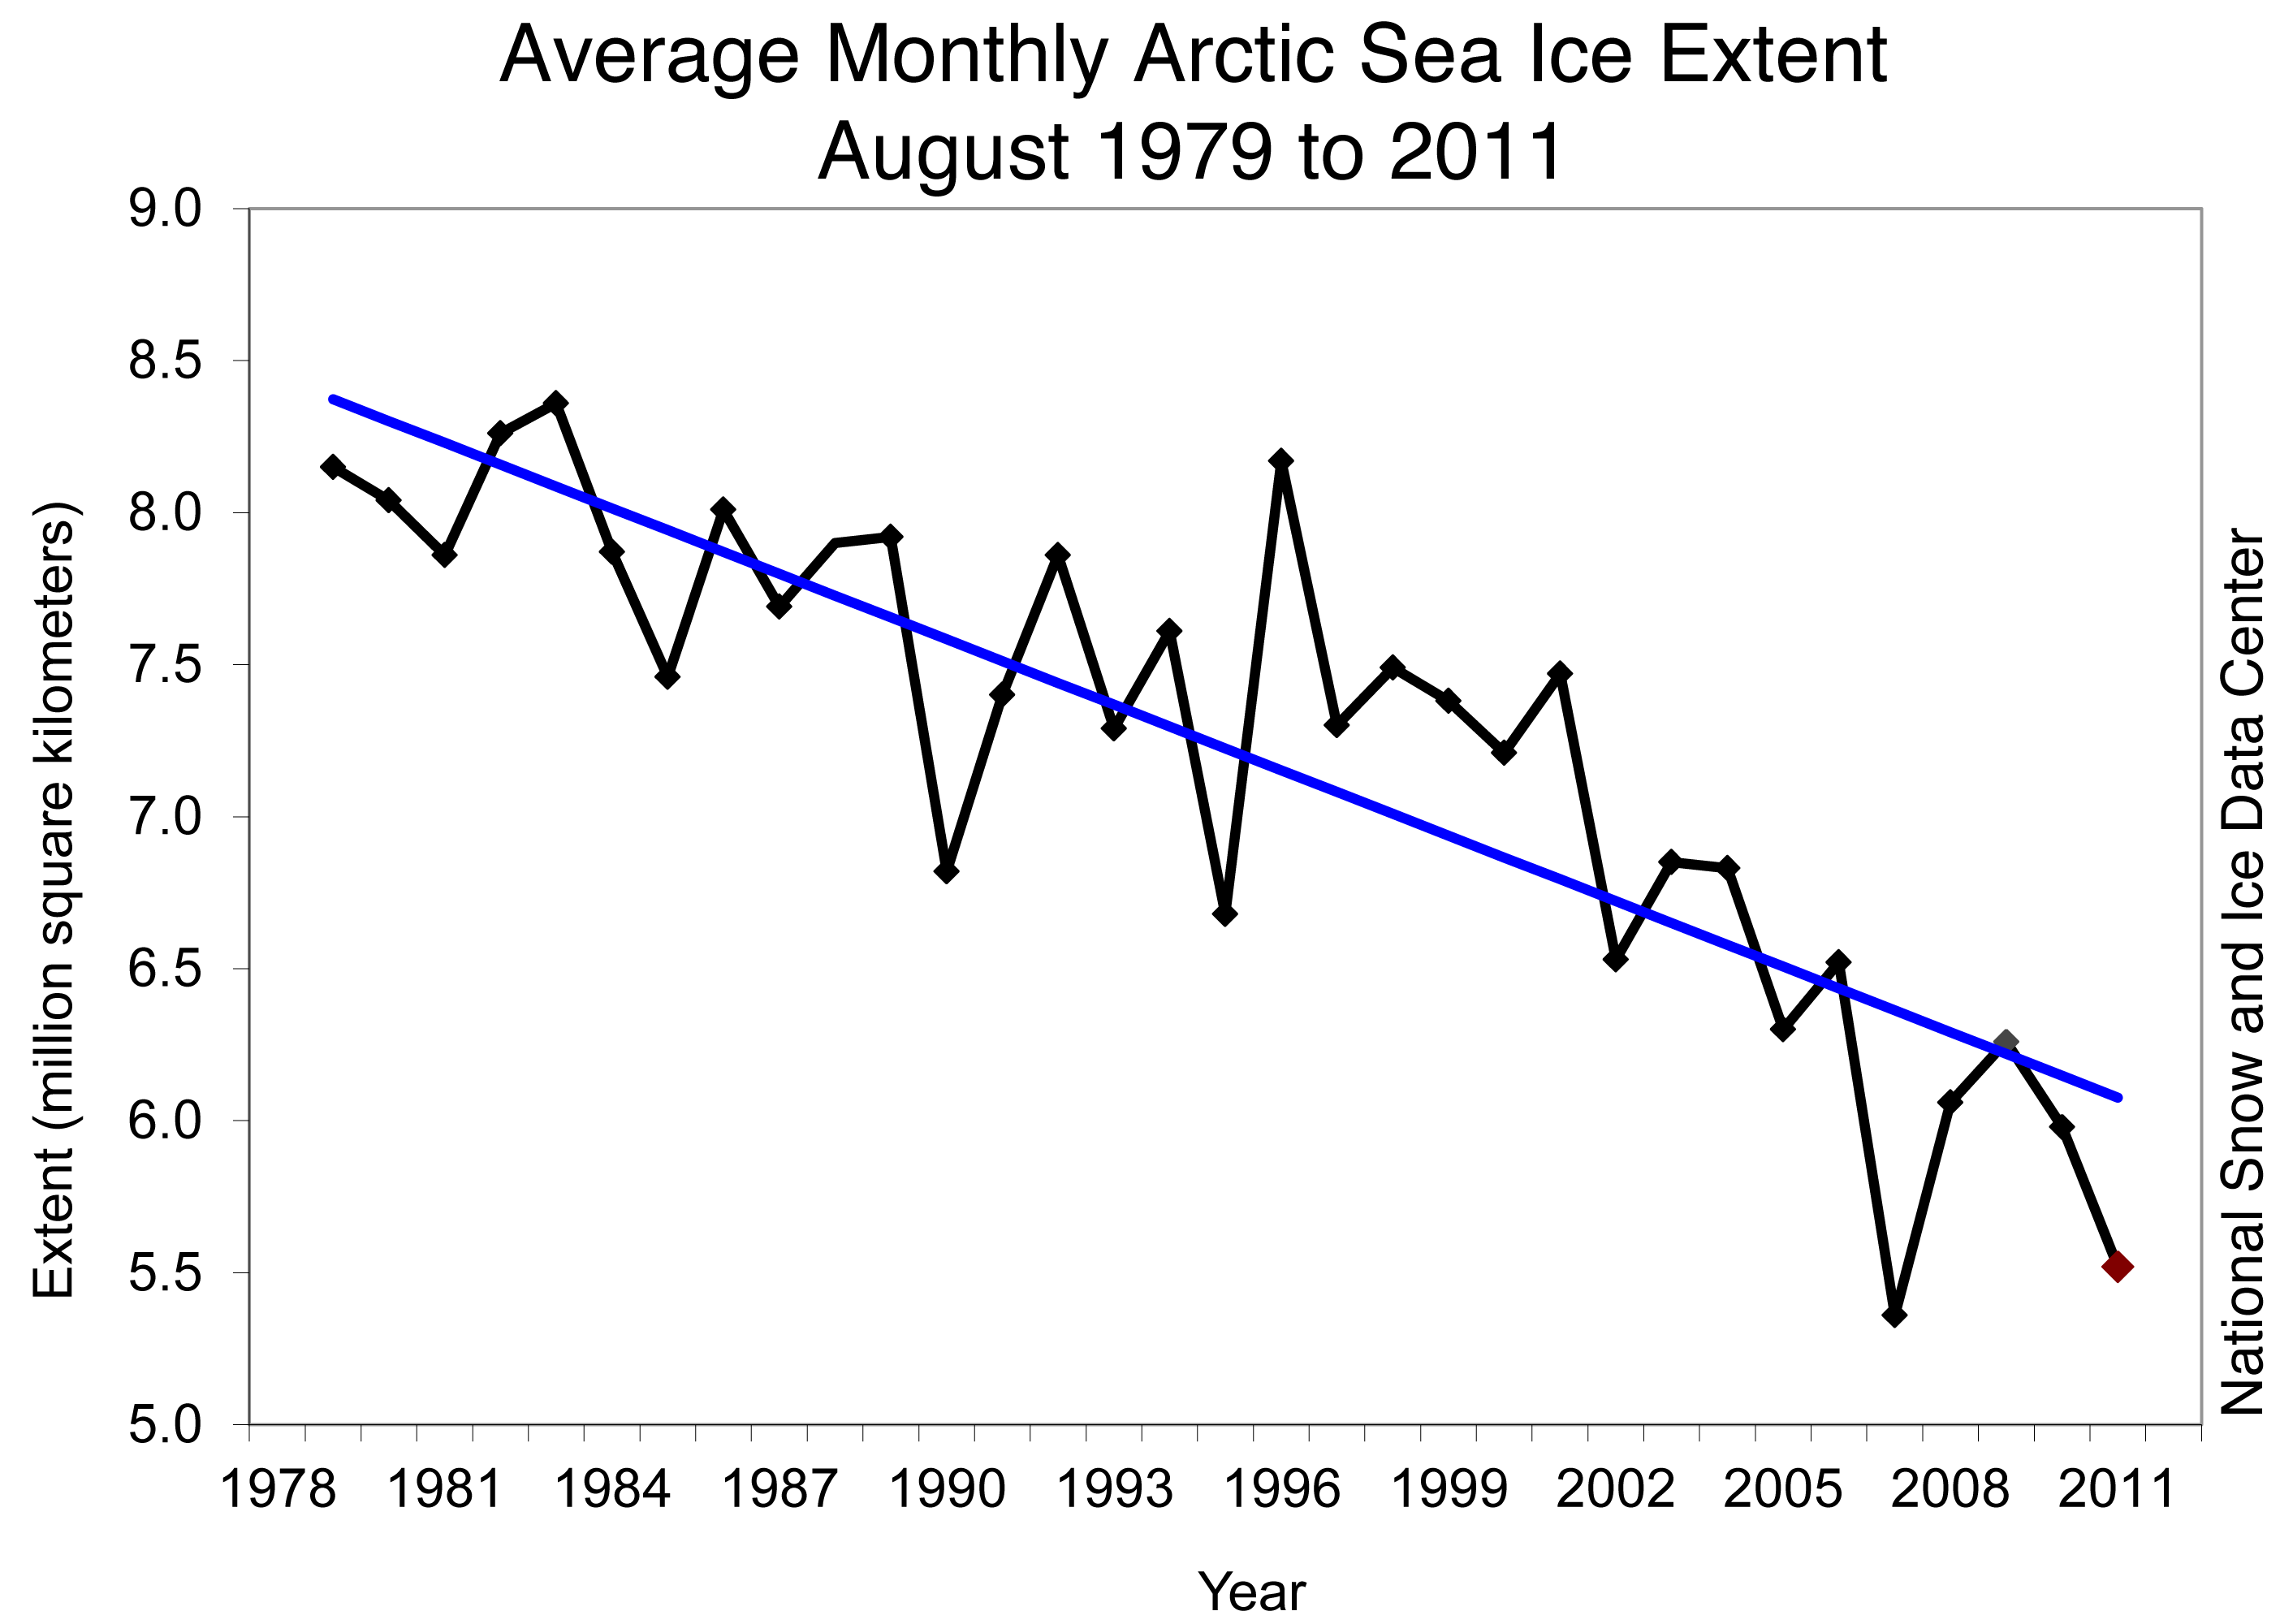 to what extent is declining pressure Moreover, the low wintertime ice cover continues a longer trend of declining sea ice, particularly a decline in thick, multiyear ice, which is ice that survives more than one melt season nsidc scientists, who have followed sea ice trends since the 1990s, expressed concern over long-term retreat.